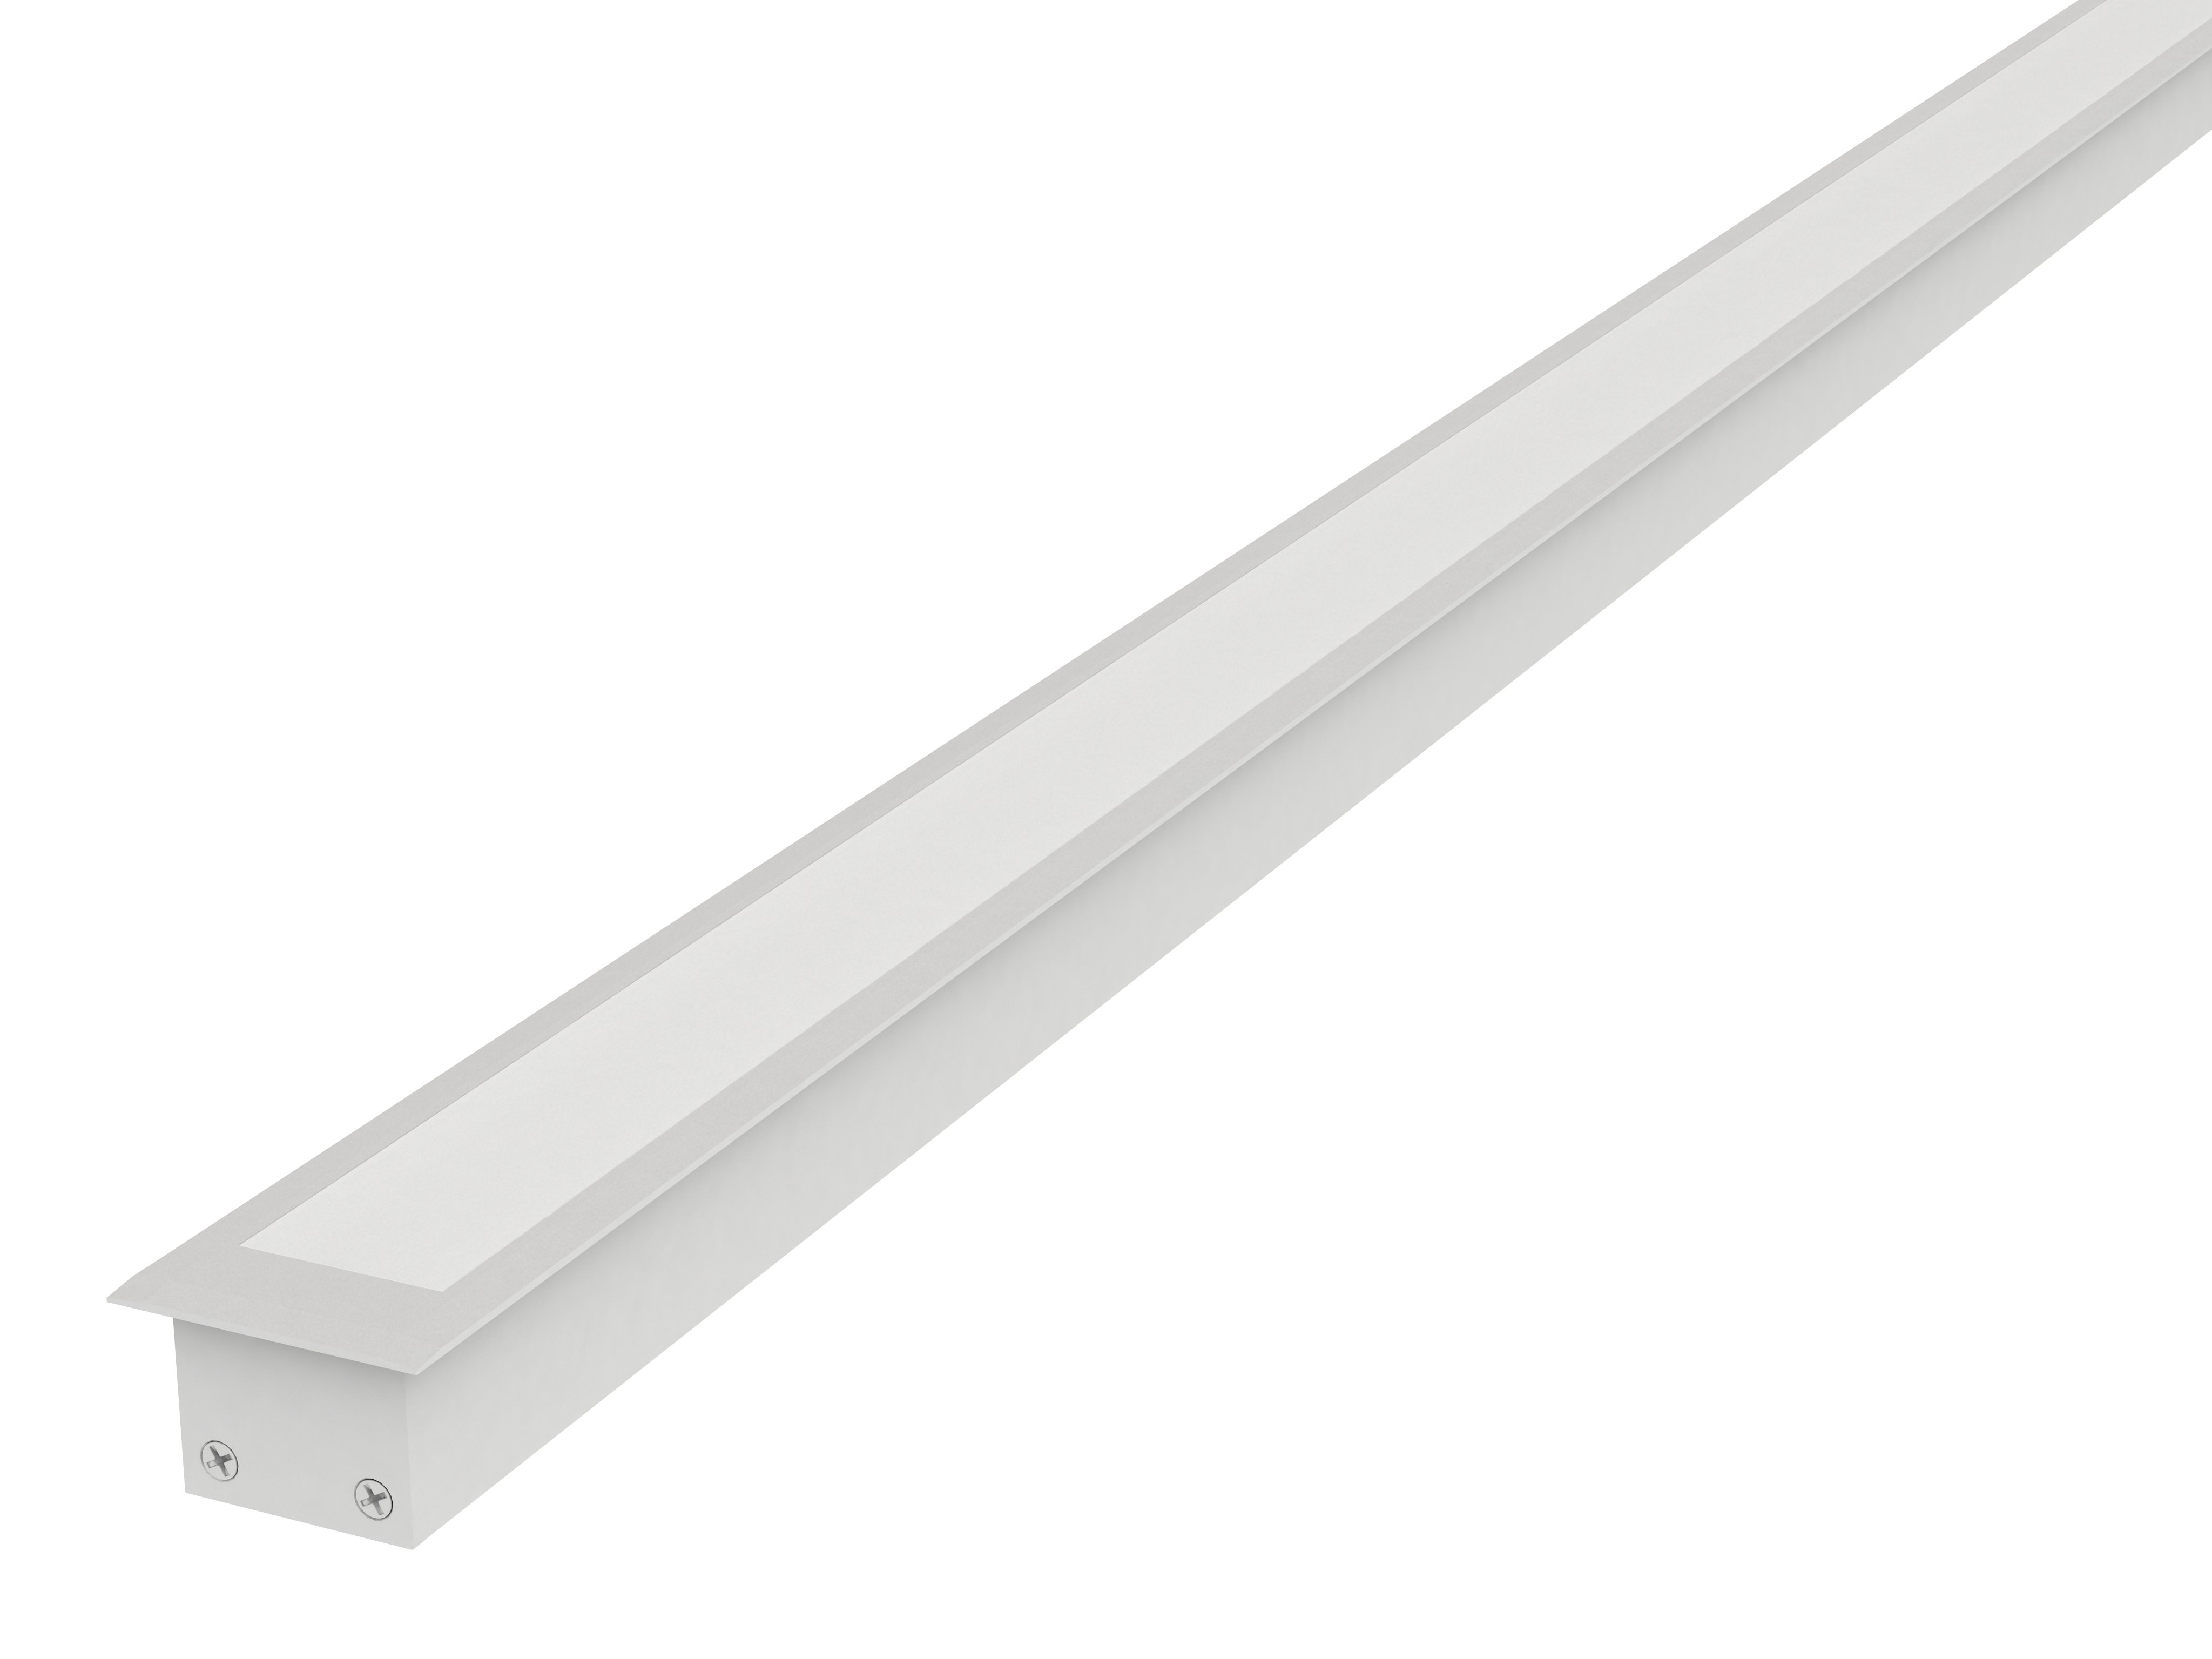 Recessed Led Linear Light Stl278